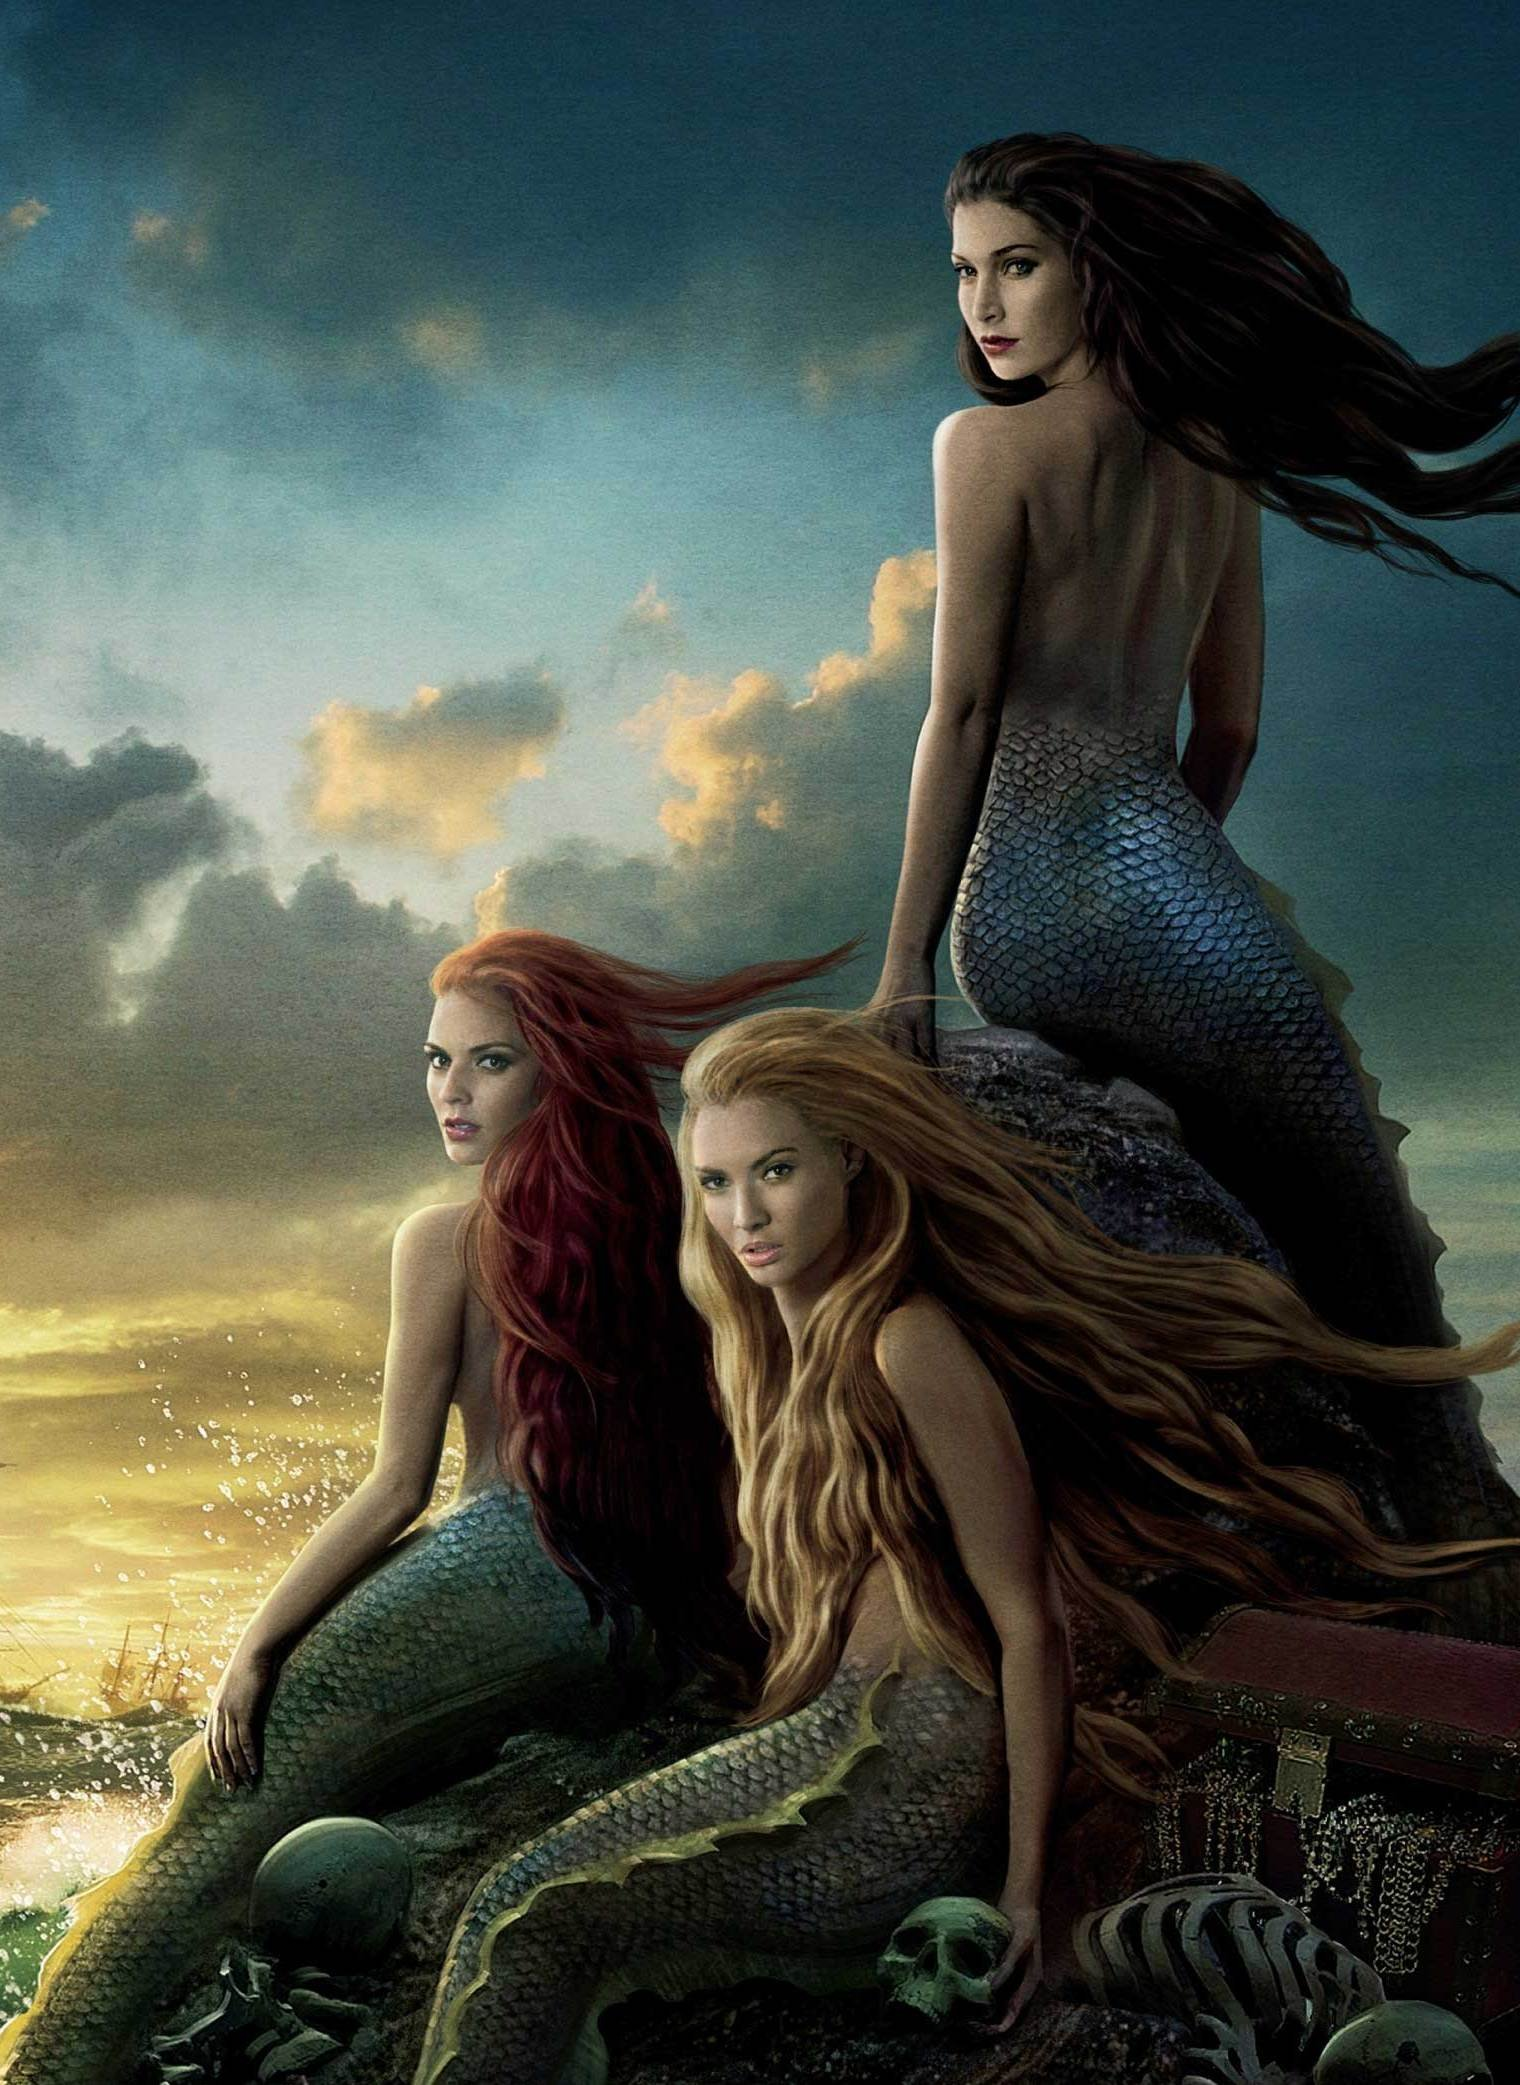 Mermaids From Pirates of the Caribbean